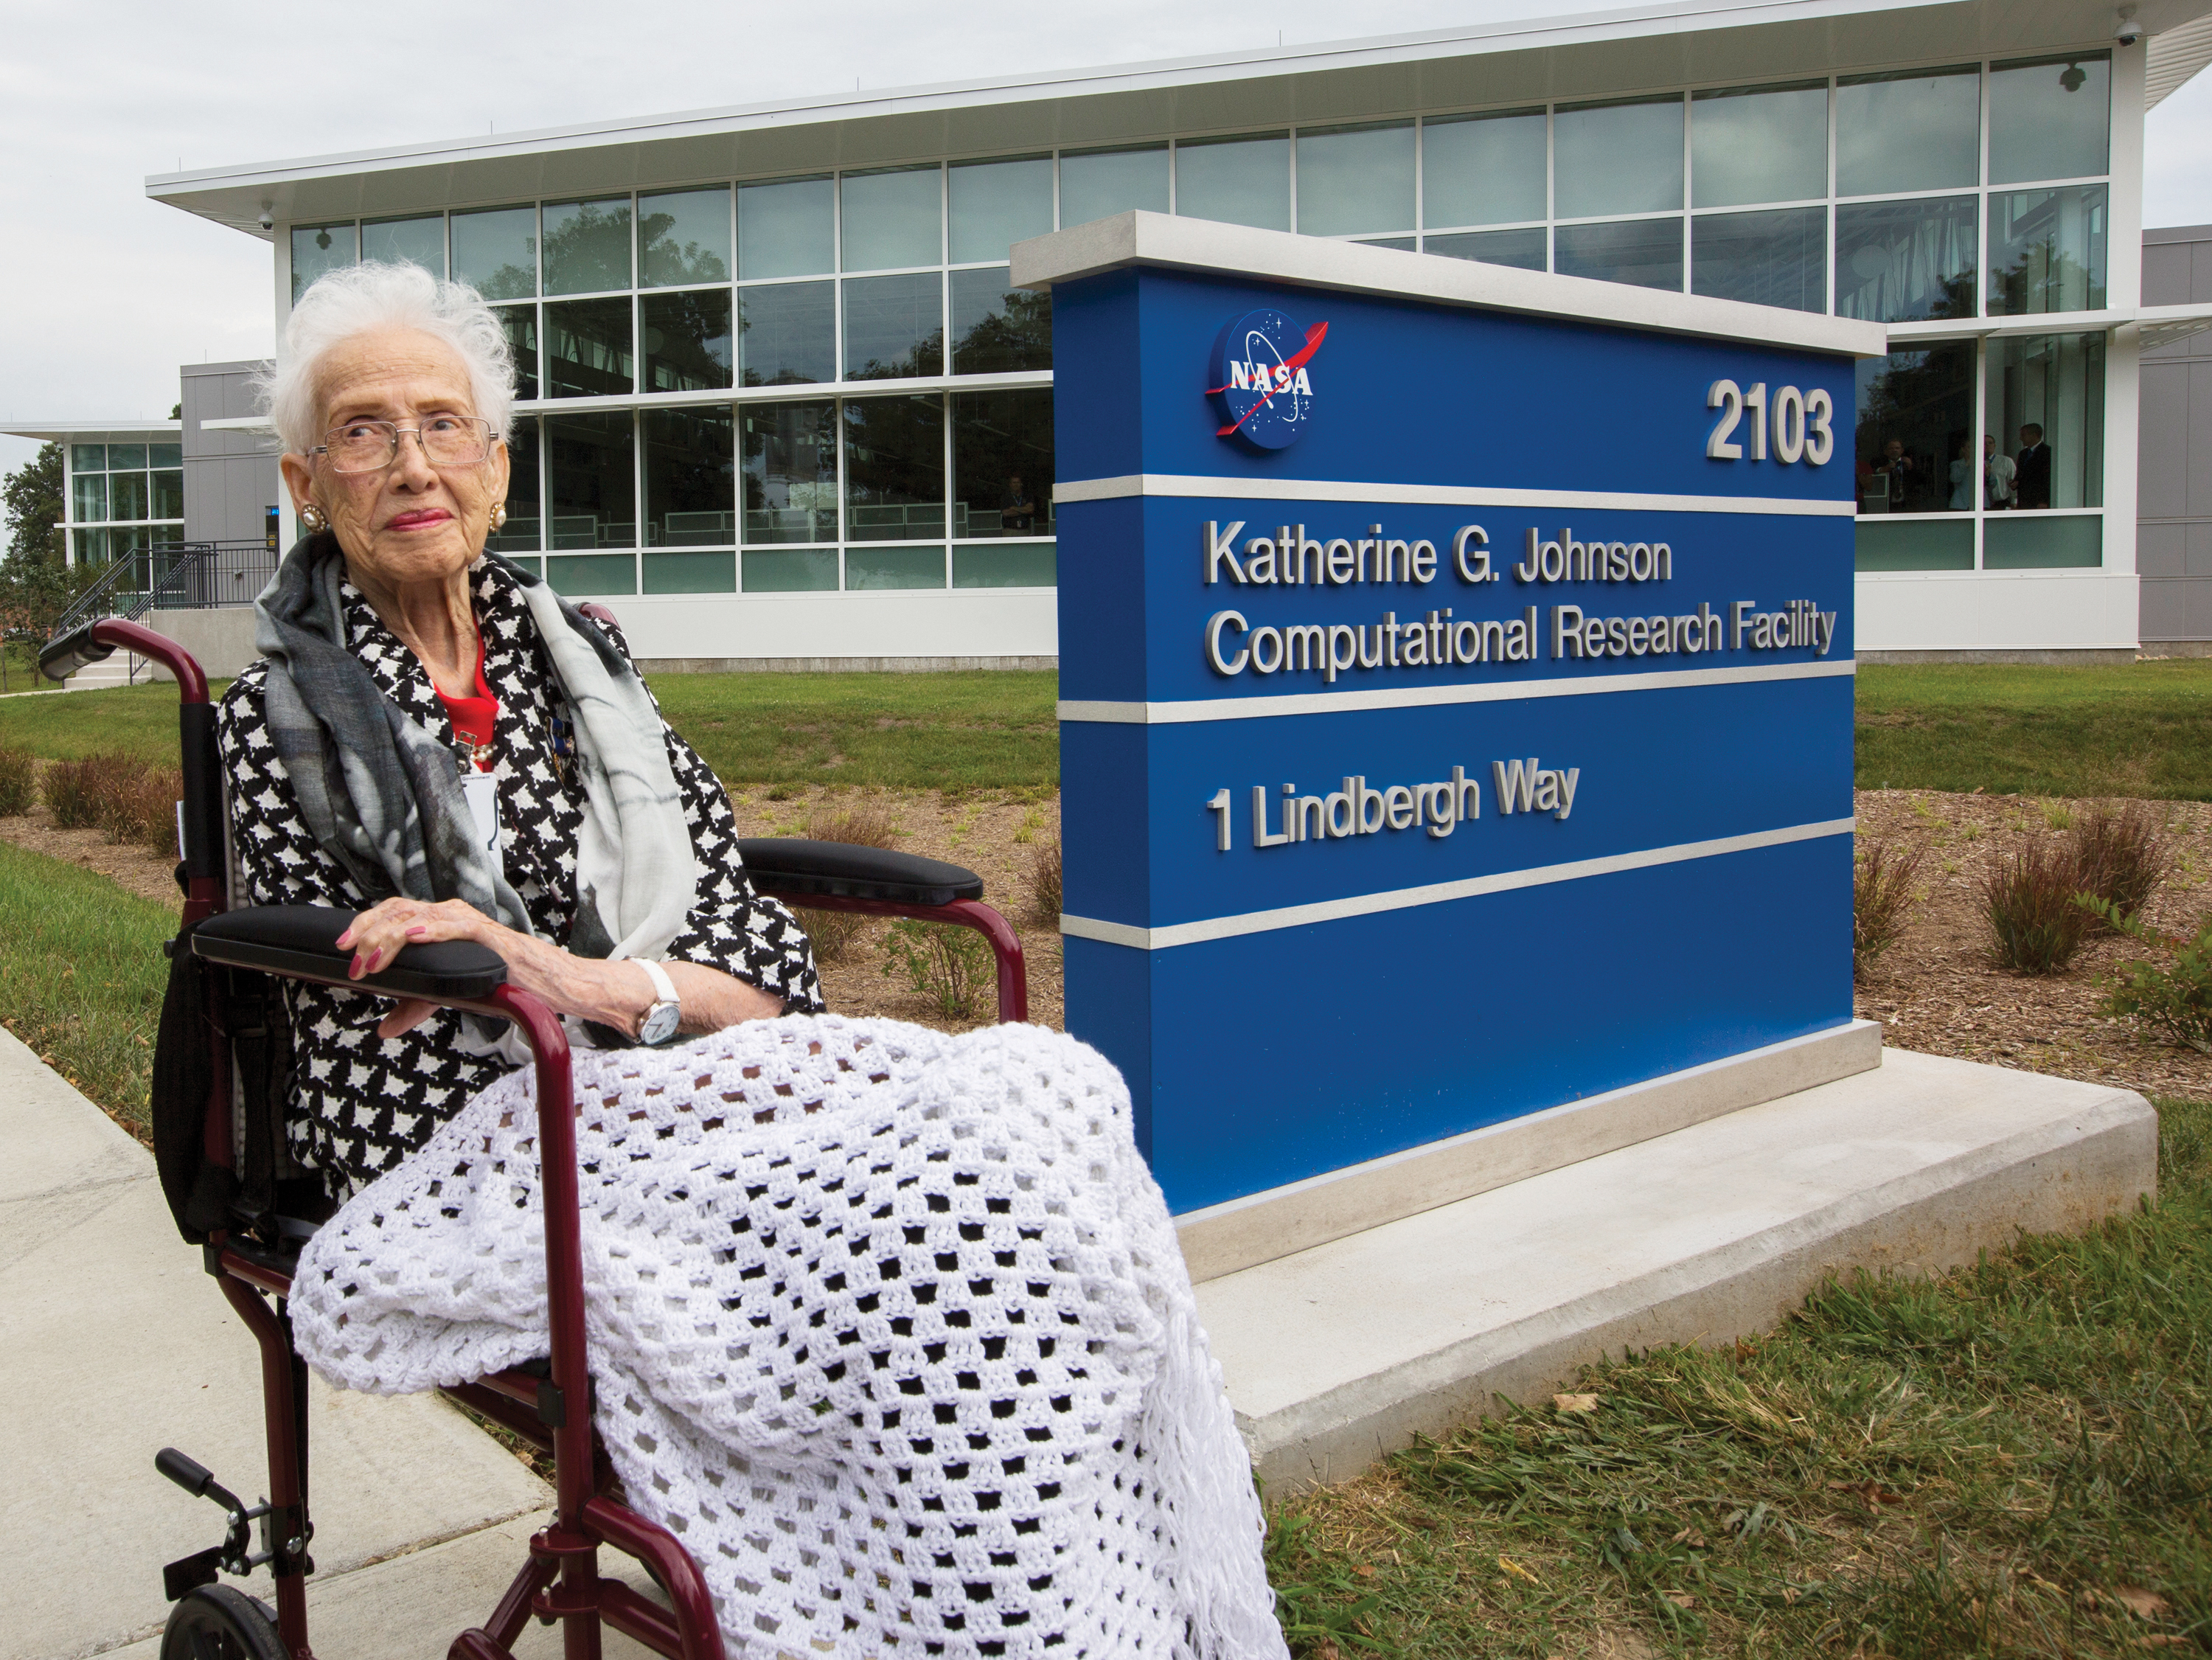 Katherine G. Johnson, trailblazing NASA mathematician immortalized in the film 'Hidden Figures,' dies at 101 | Richmond Free Press | Serving the African American Community in Richmond, VA